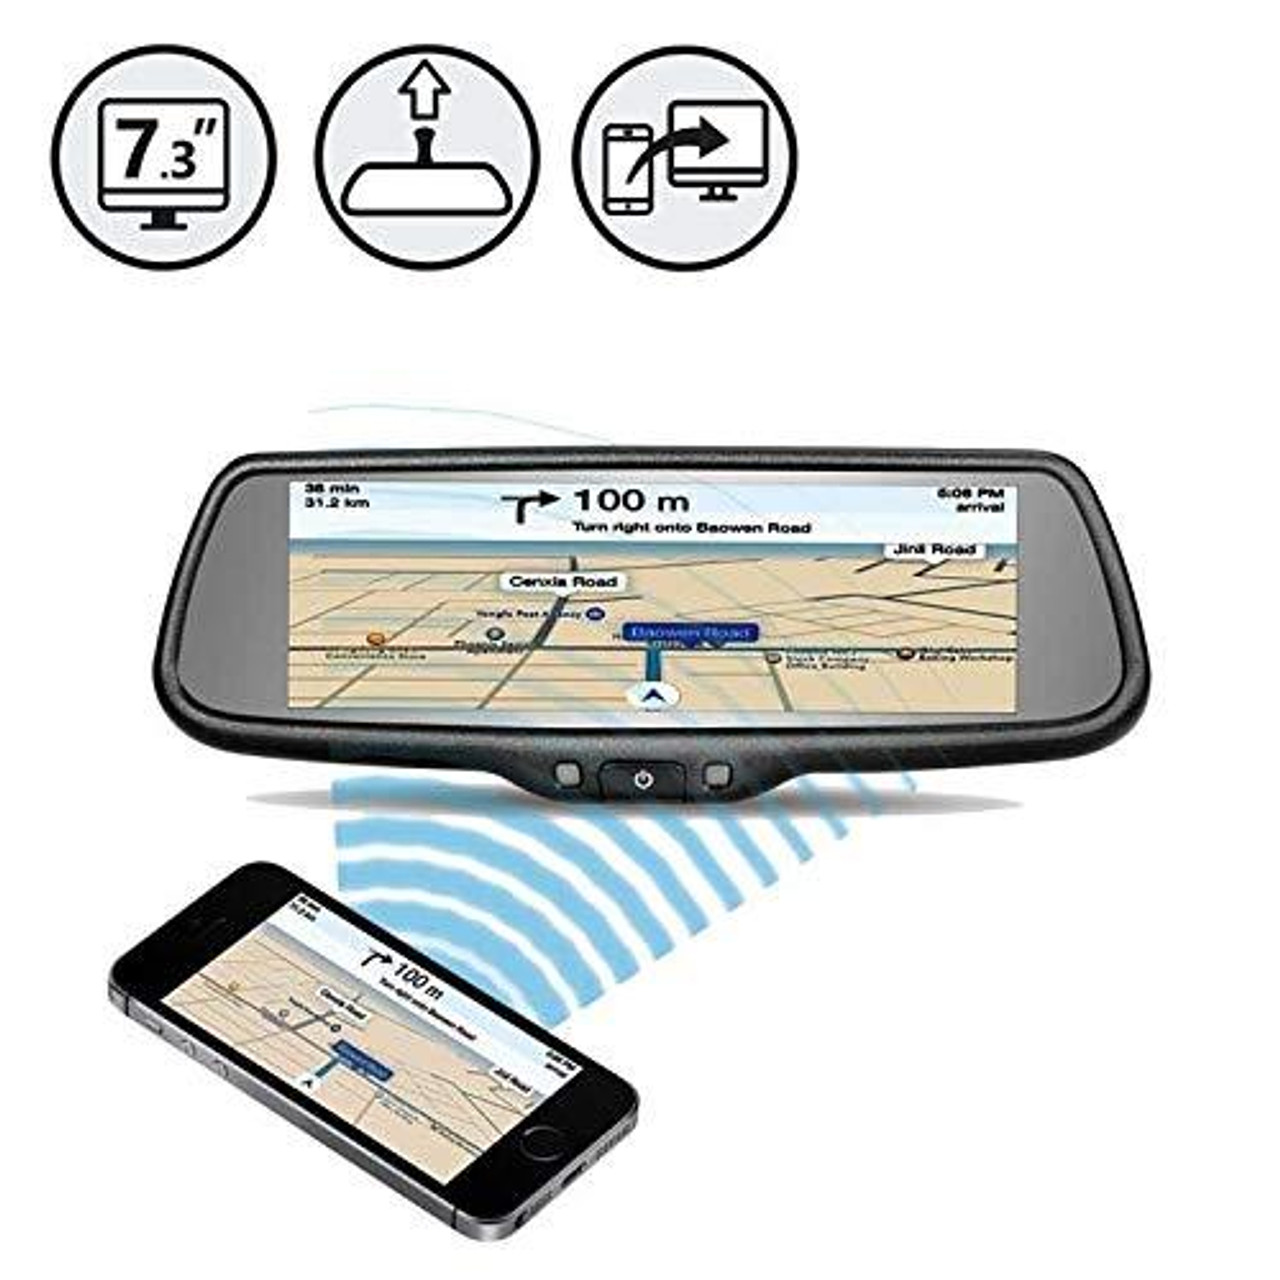 """G-Series Rear View Replacement Mirror Monitor with 7.3"""" Mirrorlink Display"""